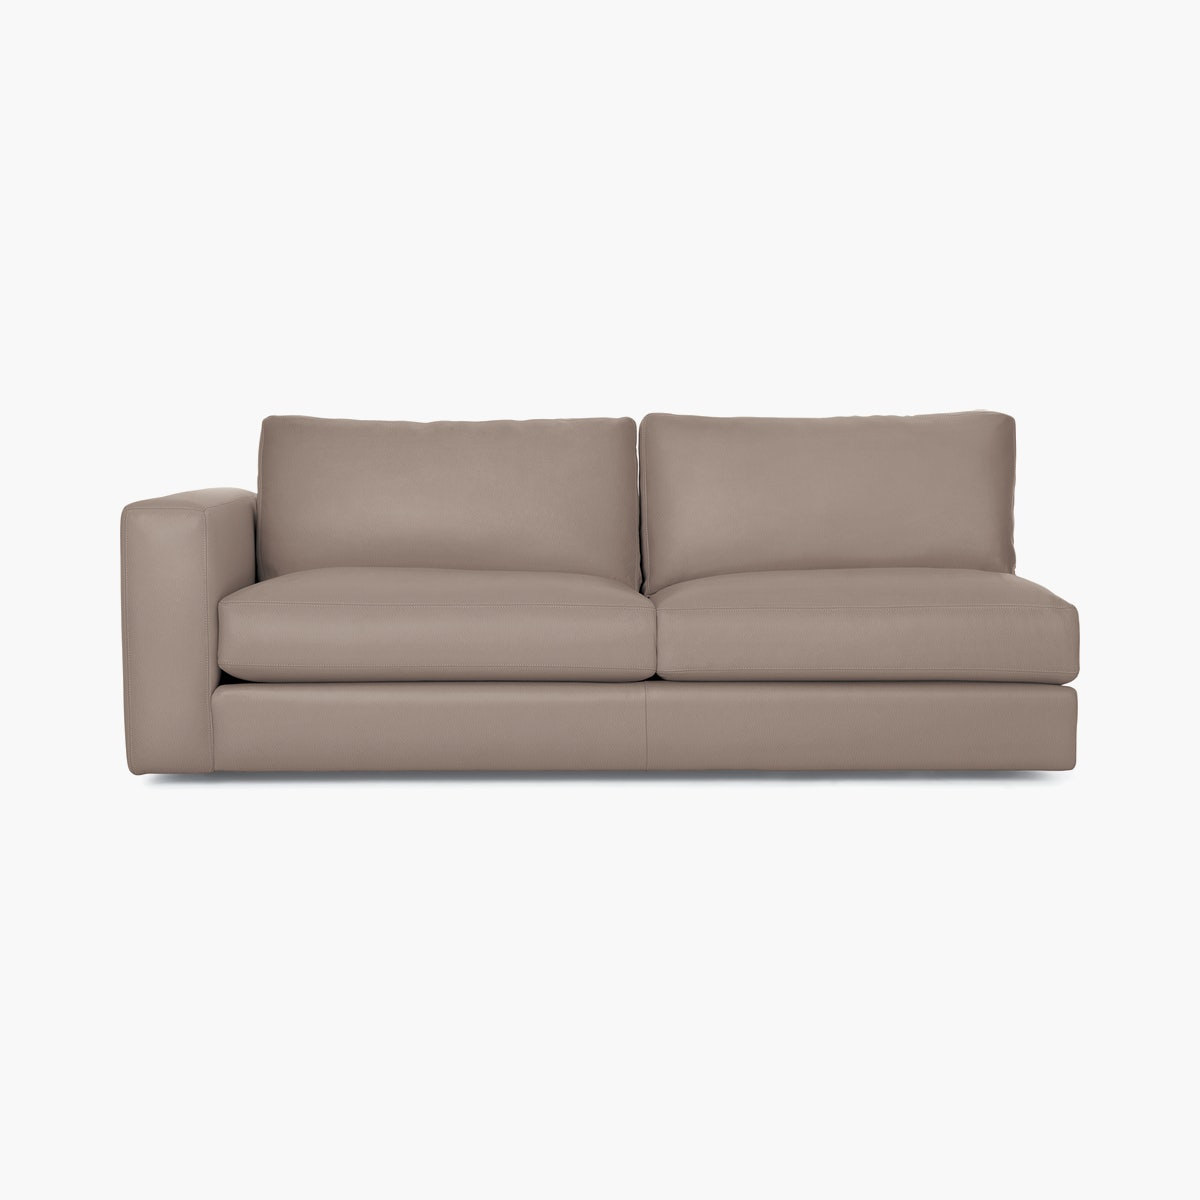 Reid Sleeper One-Arm Sofa